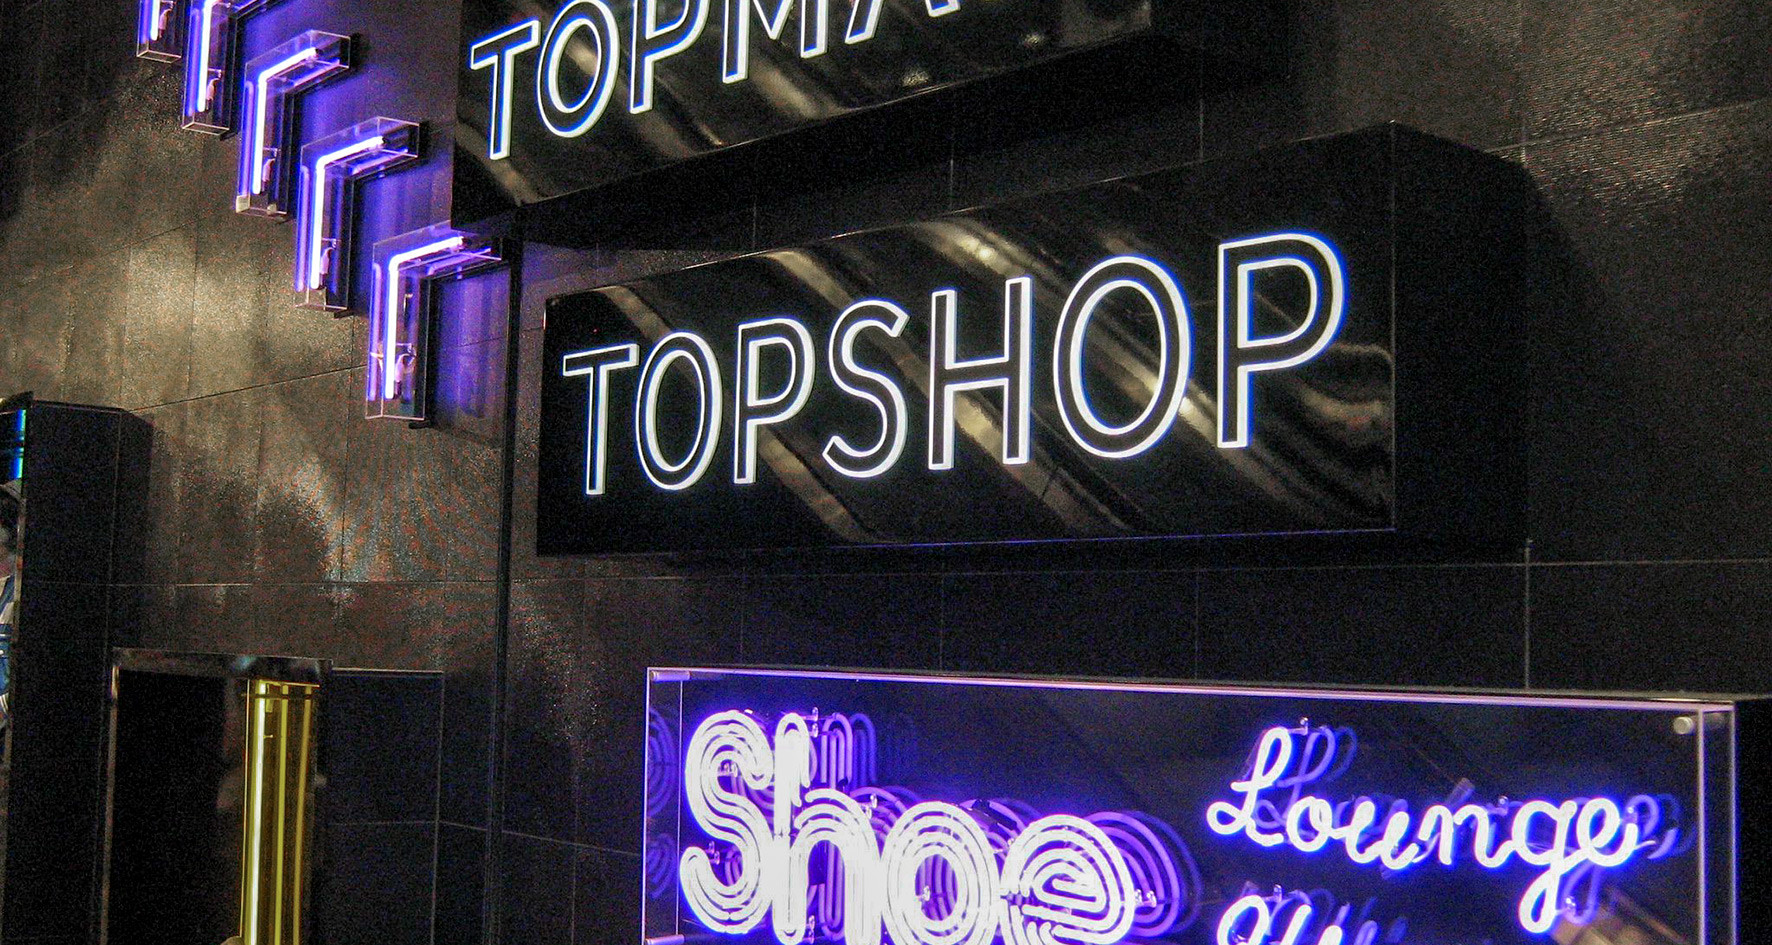 Nis Signs Neon Topshop Sign Illuminated.